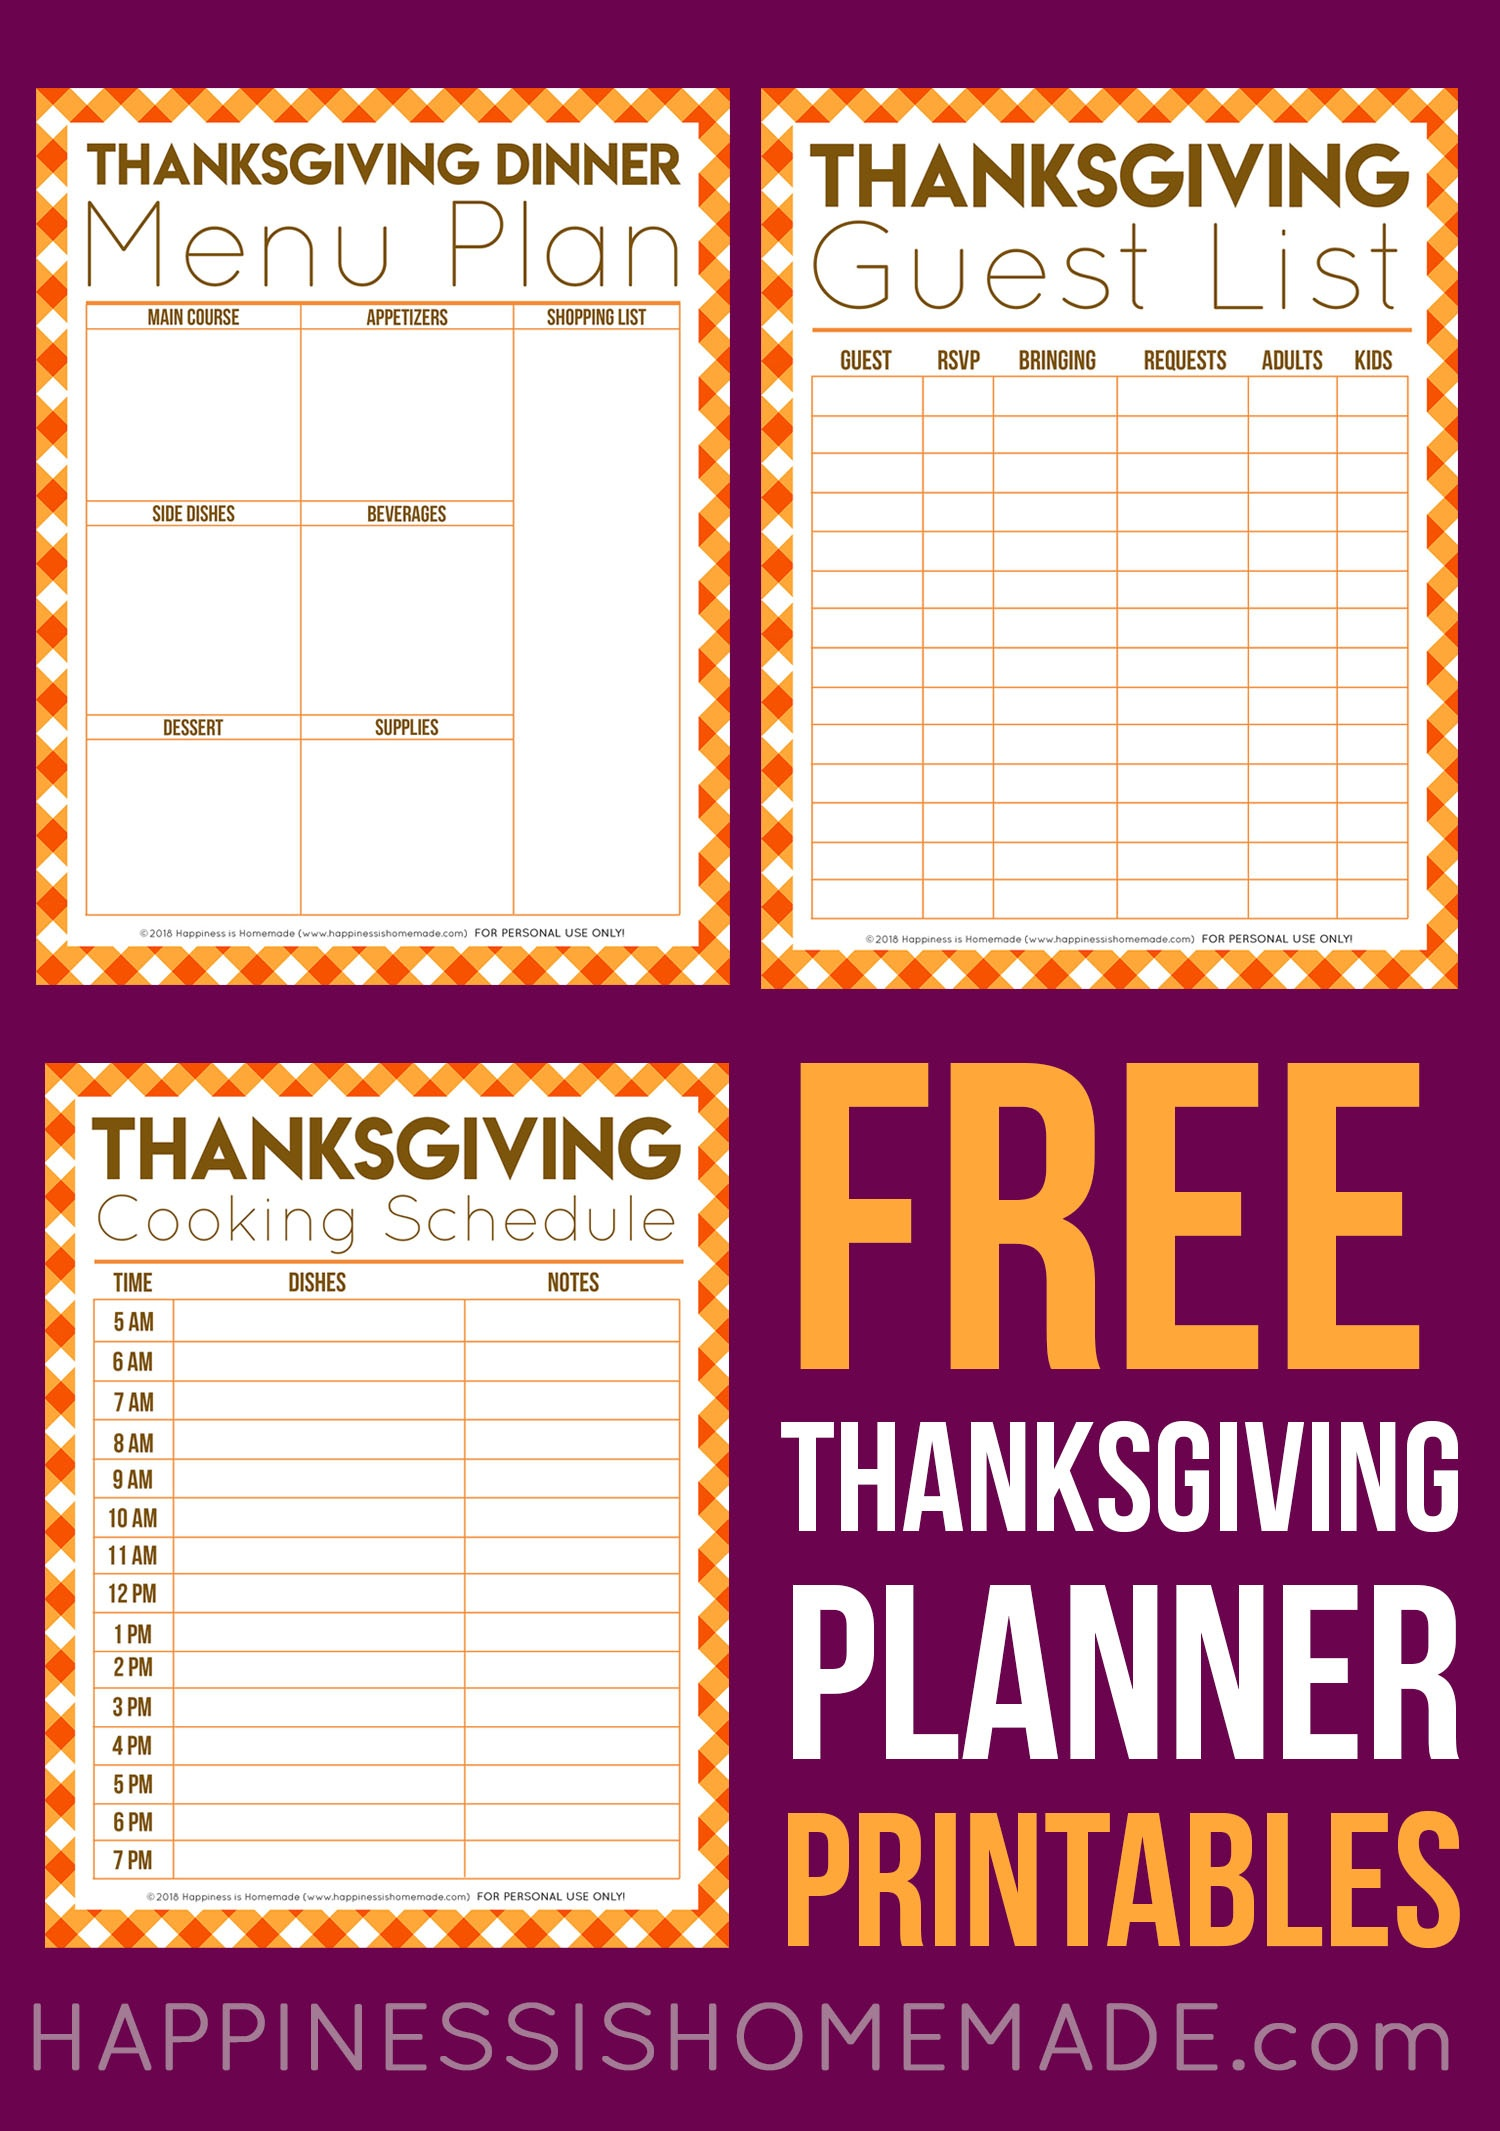 Free Thanksgiving Printables - Menu Planner, Guest List, & More - Free Printable For Thanksgiving